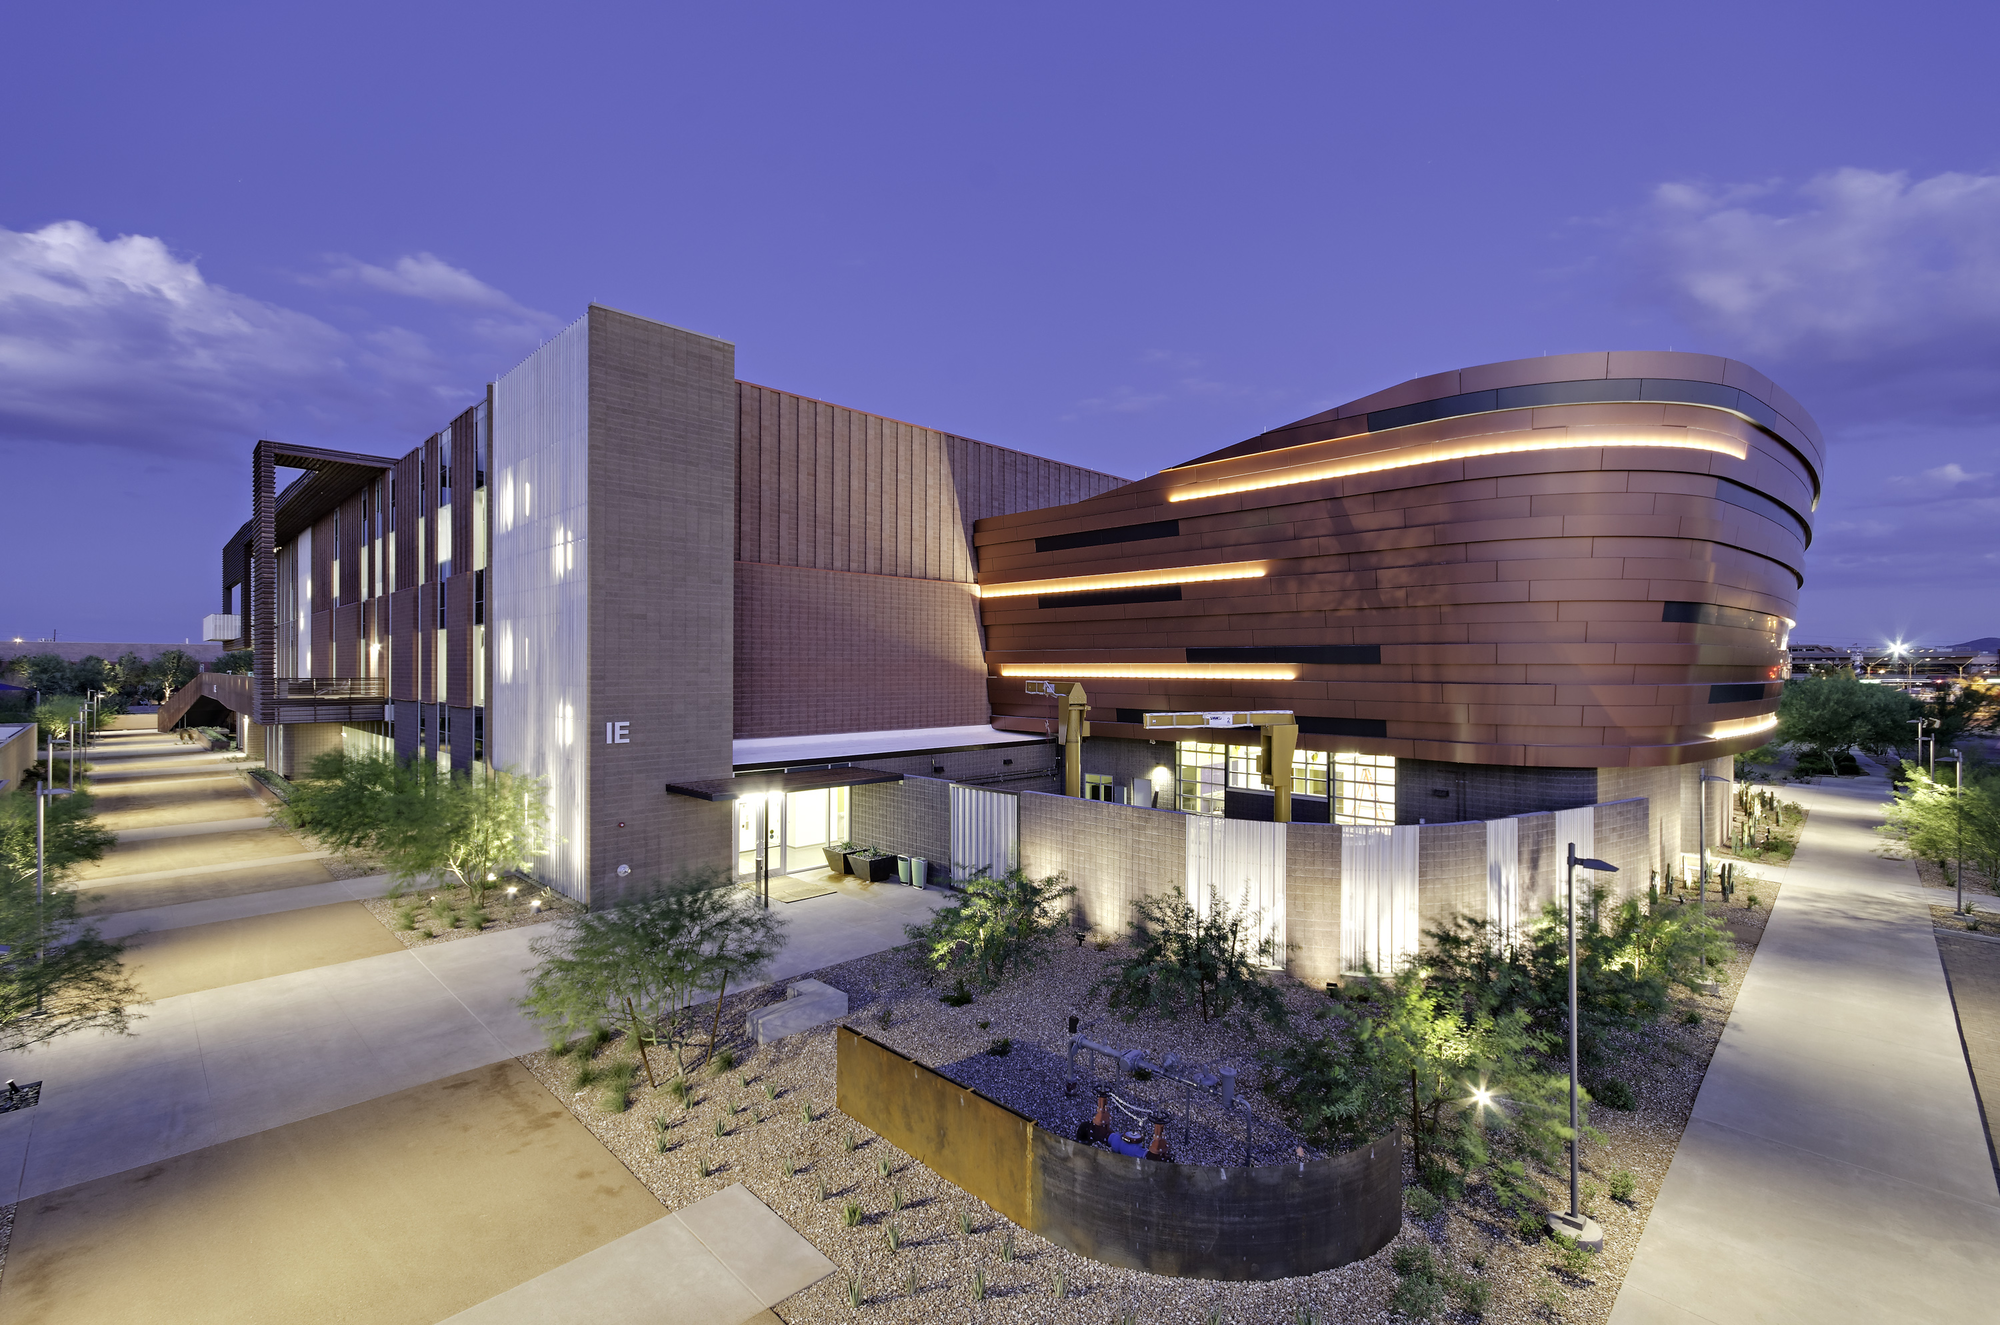 GateWay Community College / SmithGroup JJRGateWay Community College / SmithGroup JJR